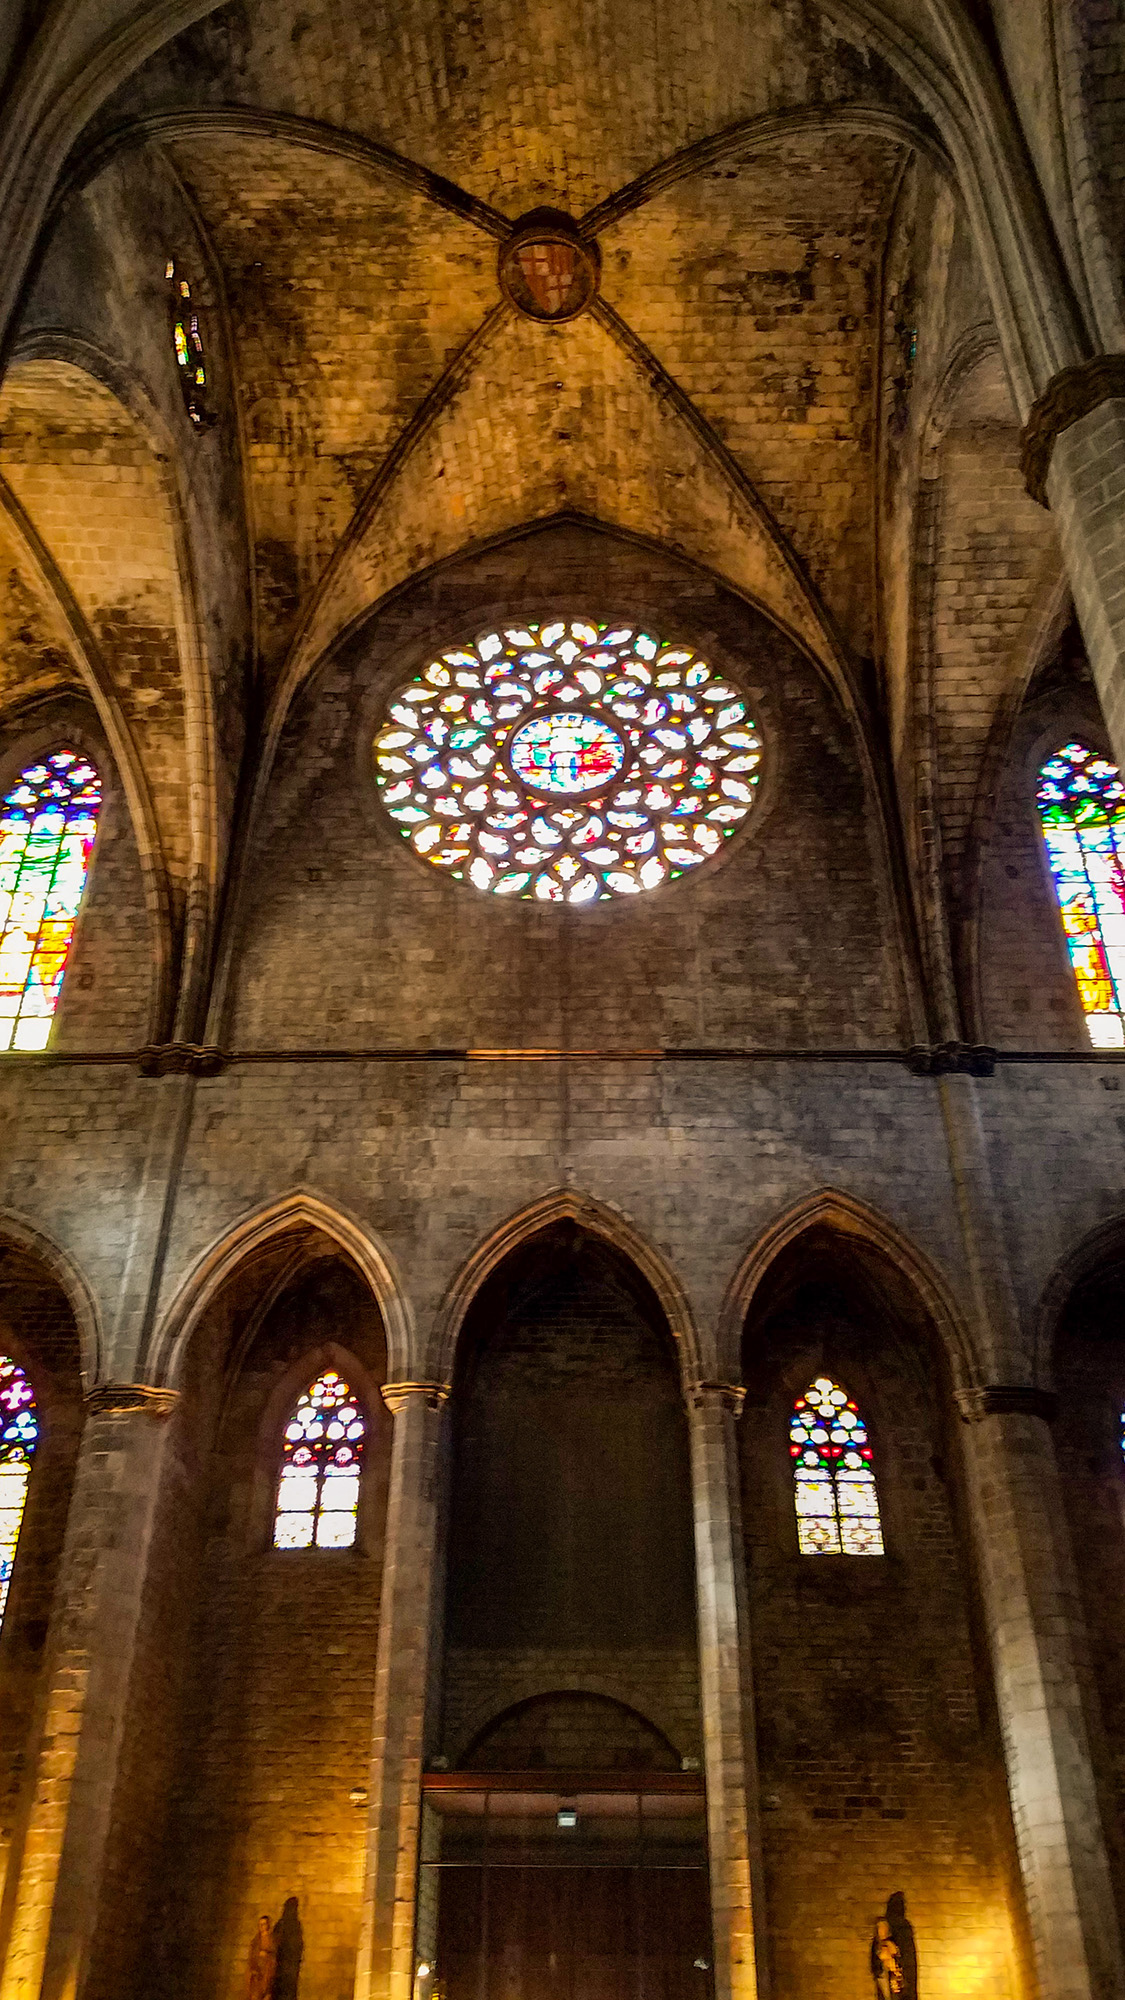 Interior stained glass of Santa Maria Del Mar - Photo by Shelley Treadaway